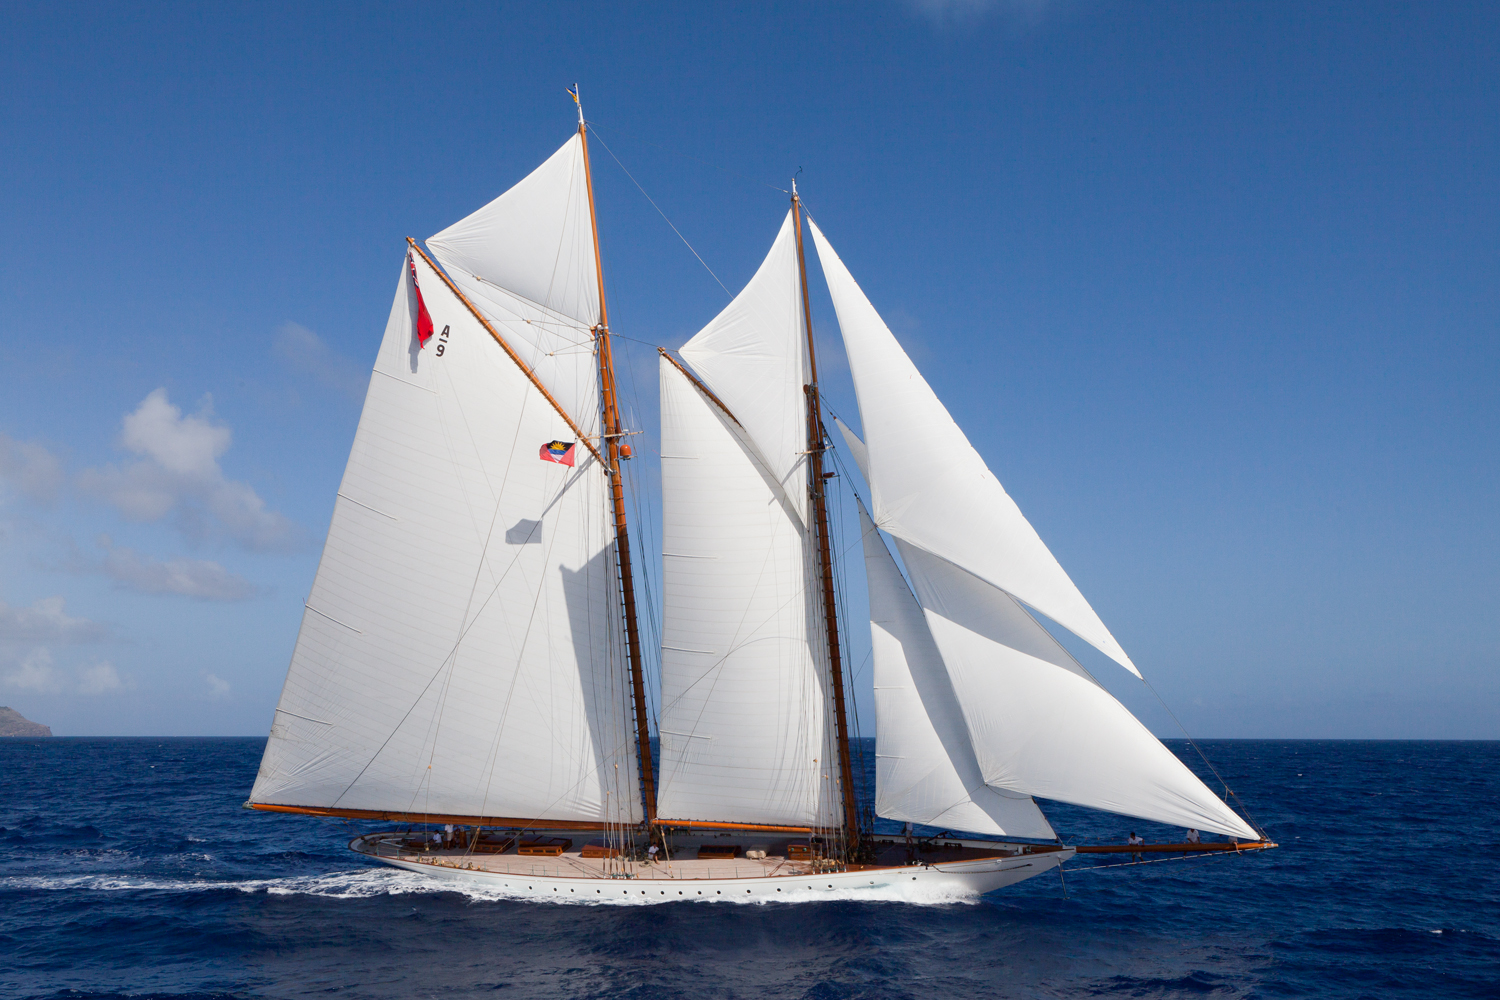 A Classic Sailing Yacht Charter With Turn of the Century Charm